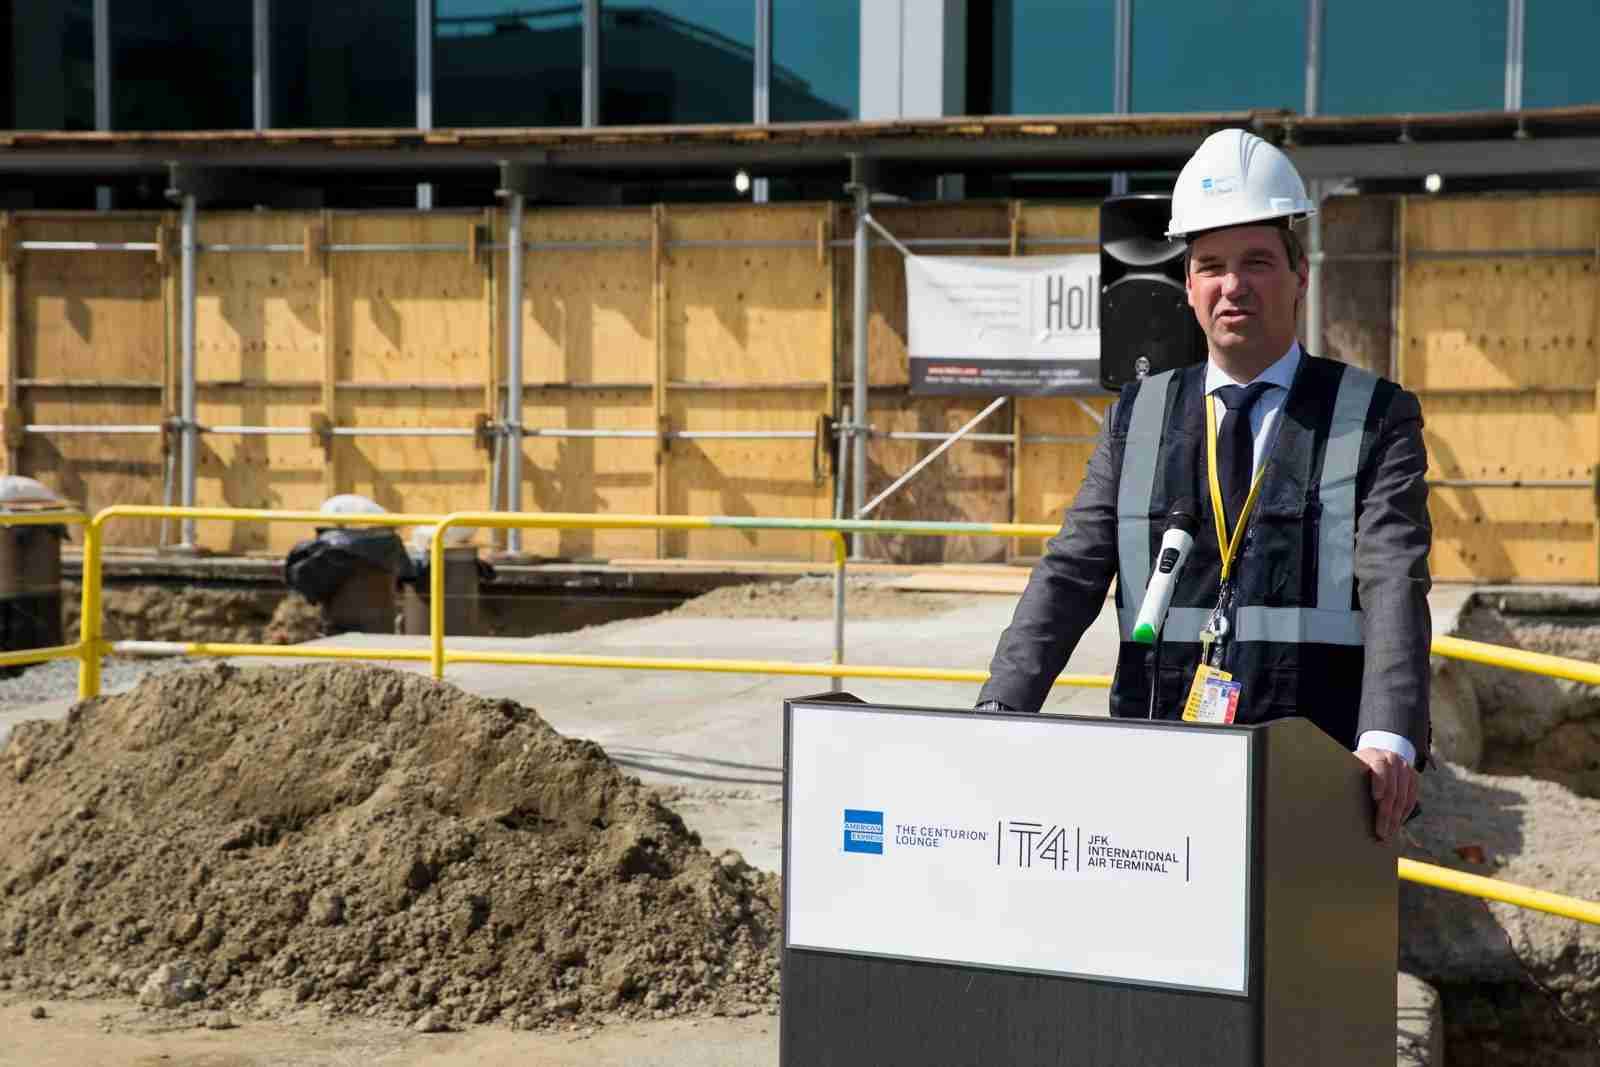 JFK Centurion Lounge groundbreaking in March 2019 (Photo by Brendan Dorsey/The Points Guy)